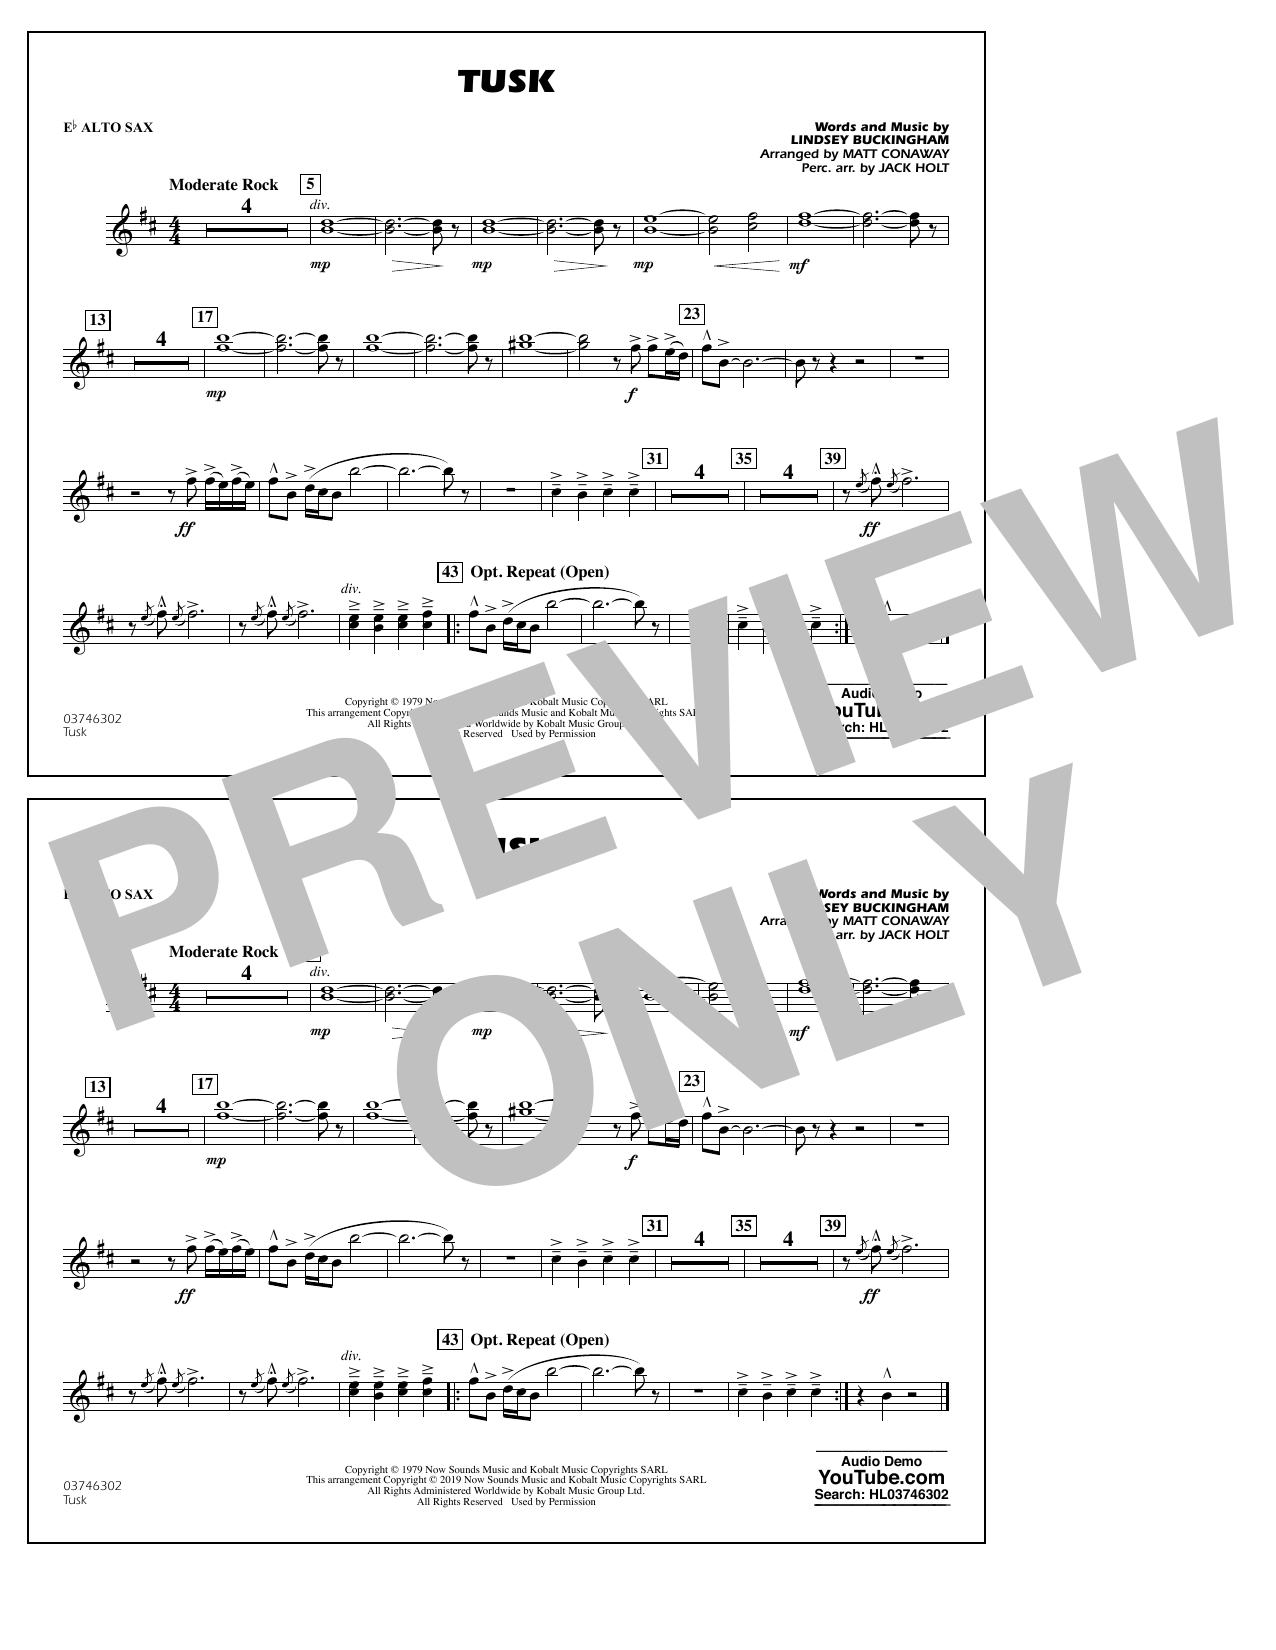 Fleetwood Mac Tusk (arr. Matt Conaway) - Eb Alto Sax sheet music notes and chords